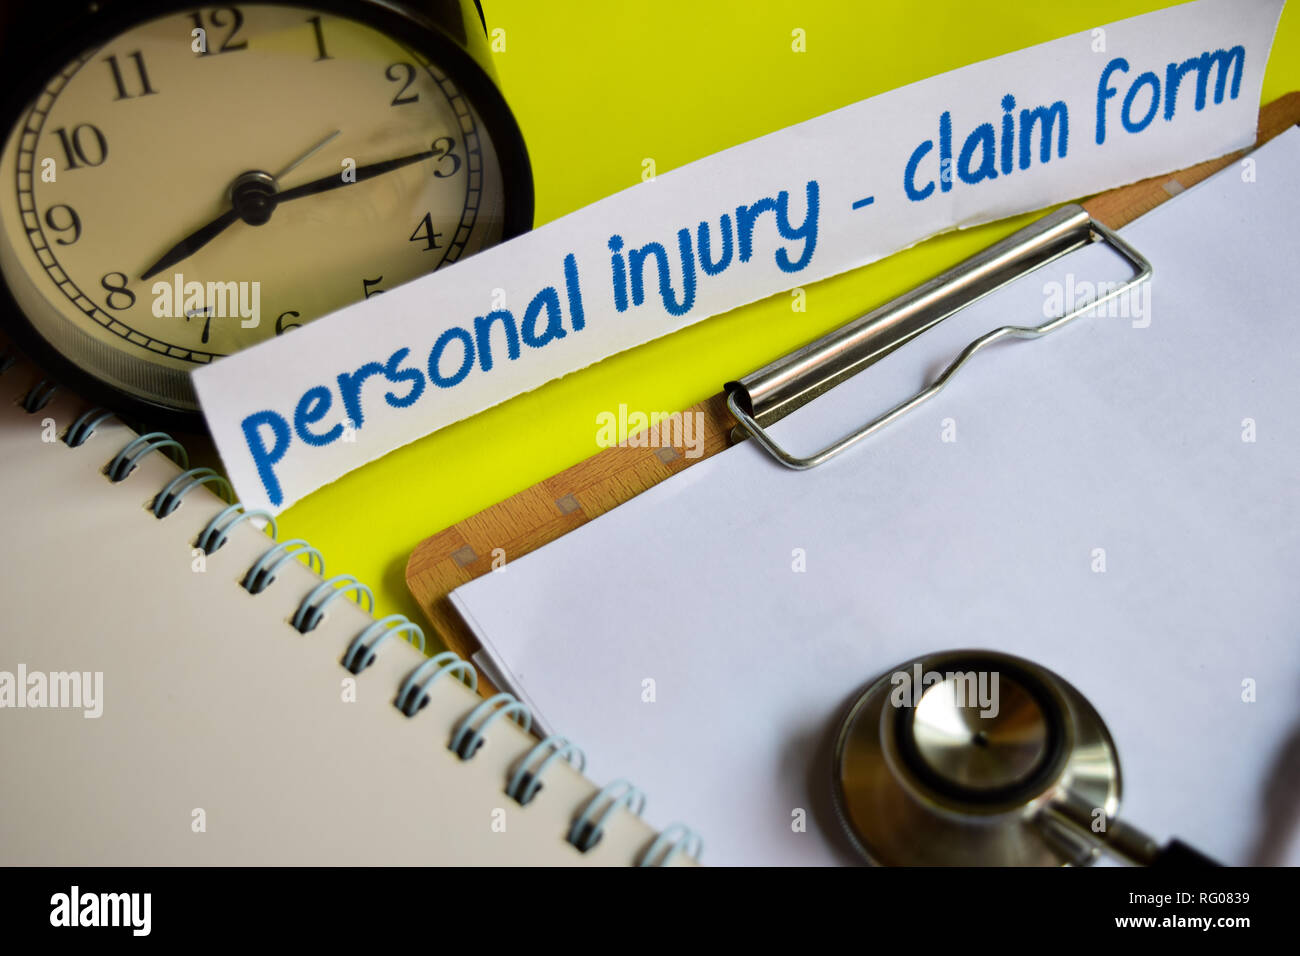 Personal injury - Claim form on healthcare concept inspiration on yellow background - Stock Image